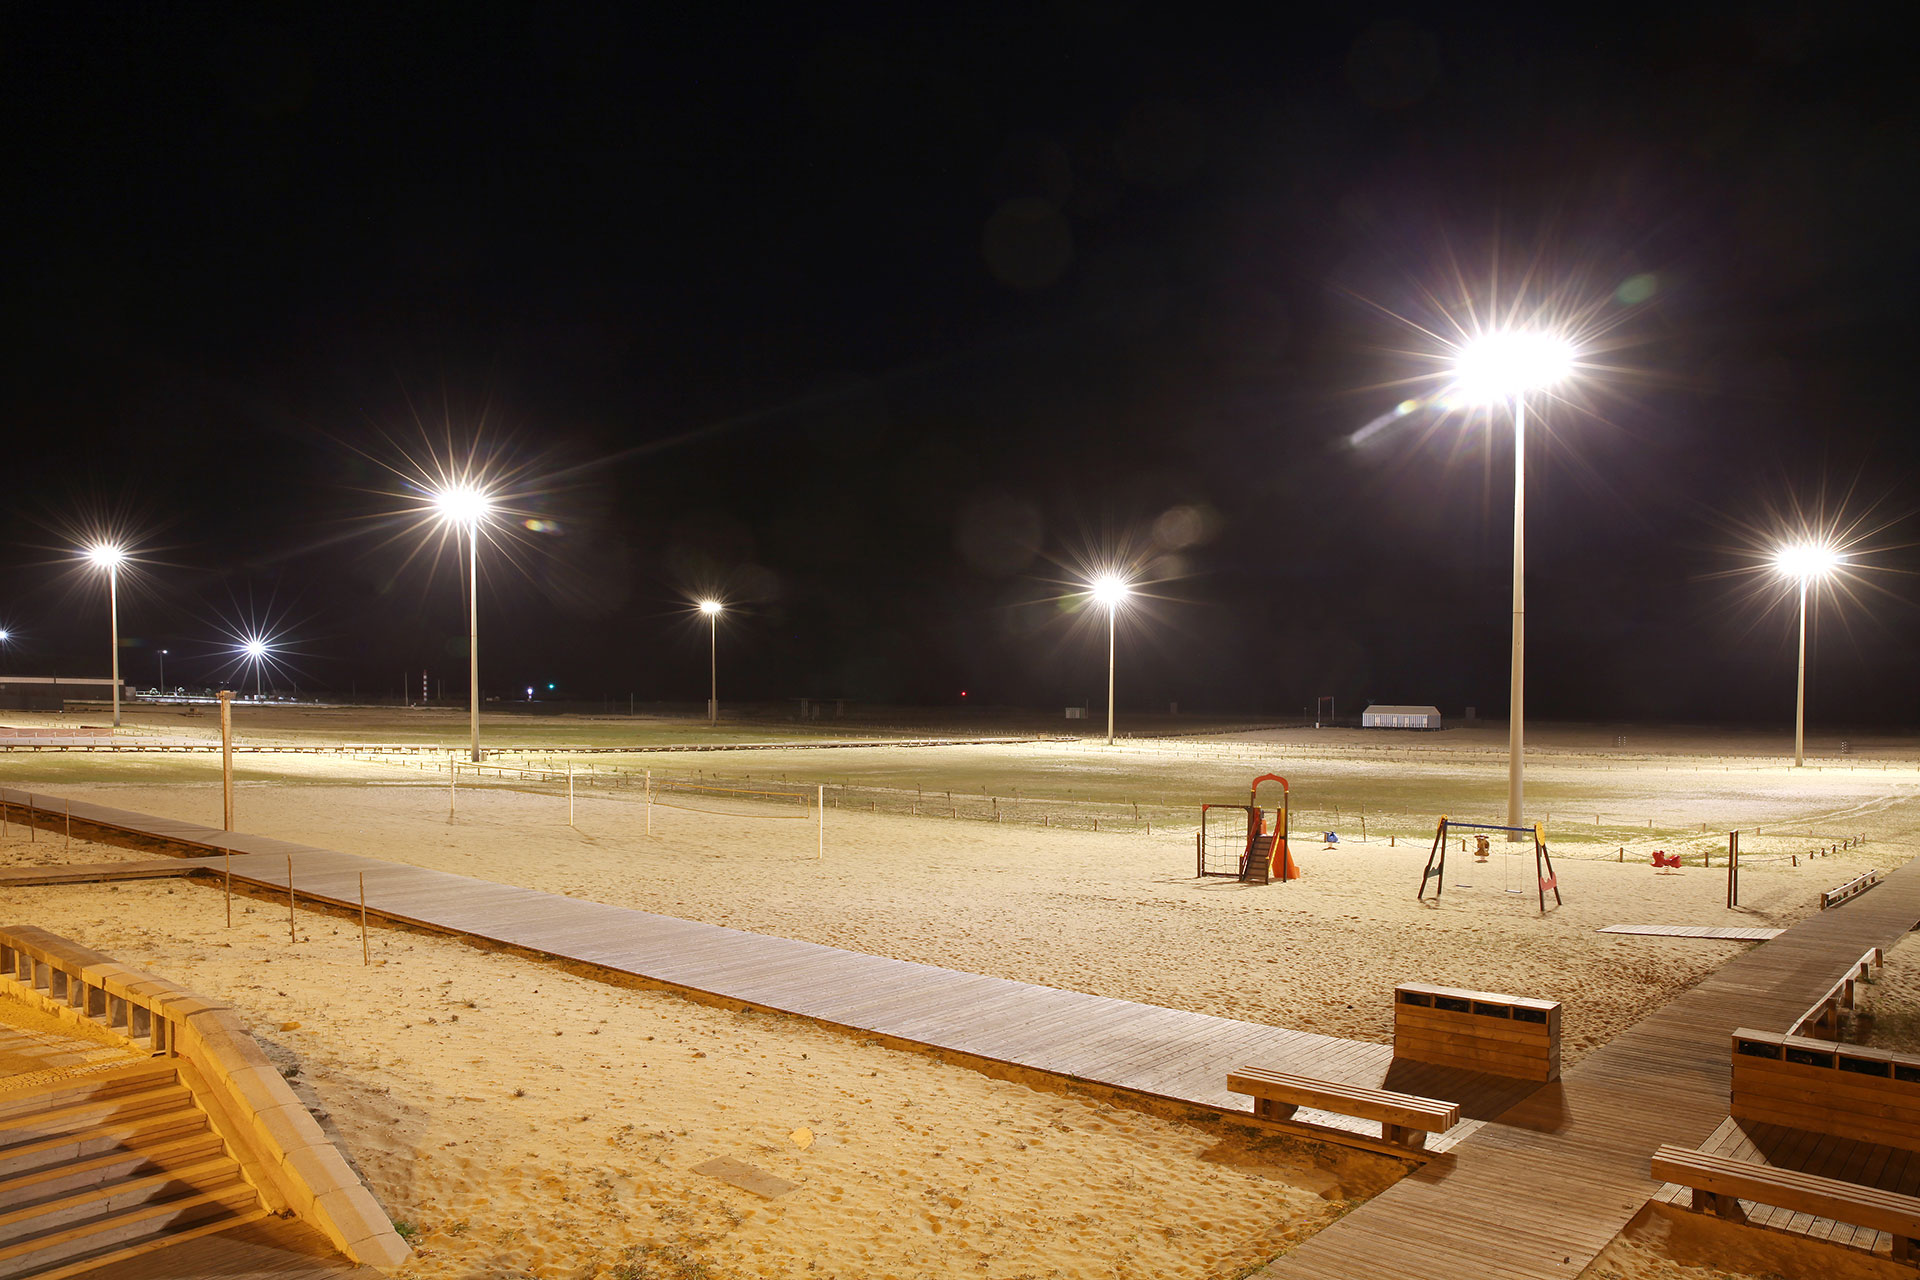 Avento provides bright white light for perfect visibility so people can enjoy Figueira da Foz beach all night long